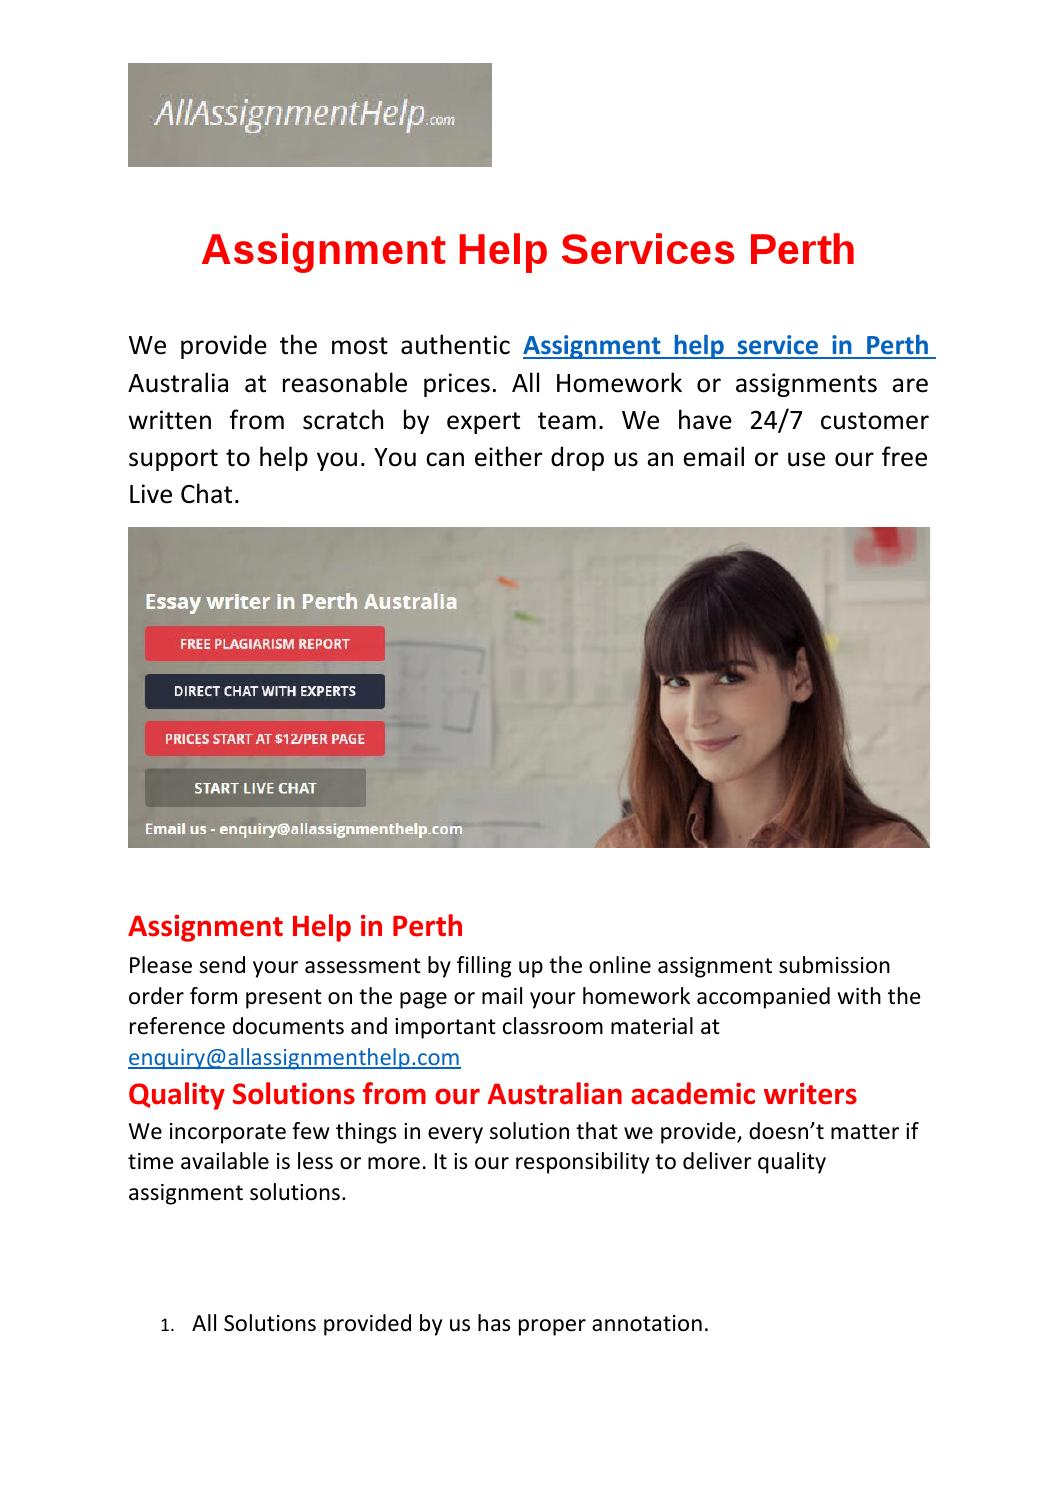 Assignment helpers perth